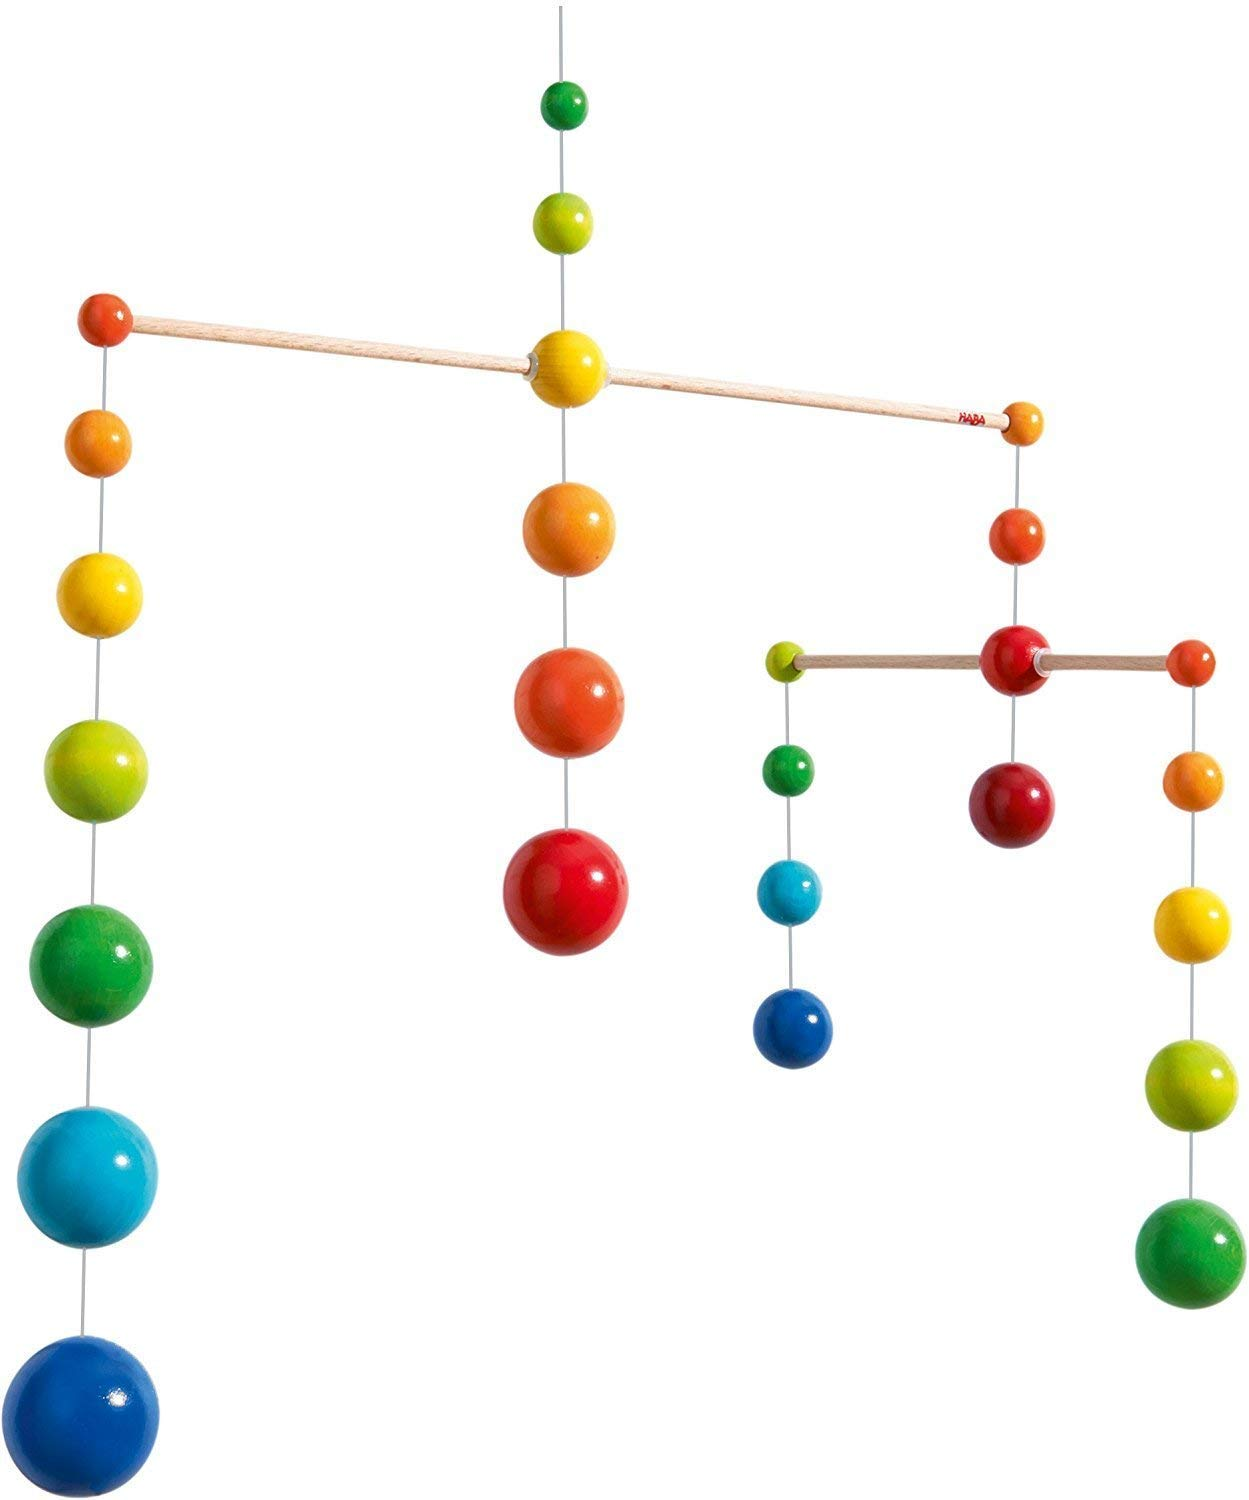 HABA Nursery Room Wooden Mobile Rainbow Balls (Made in Germany) by HABA